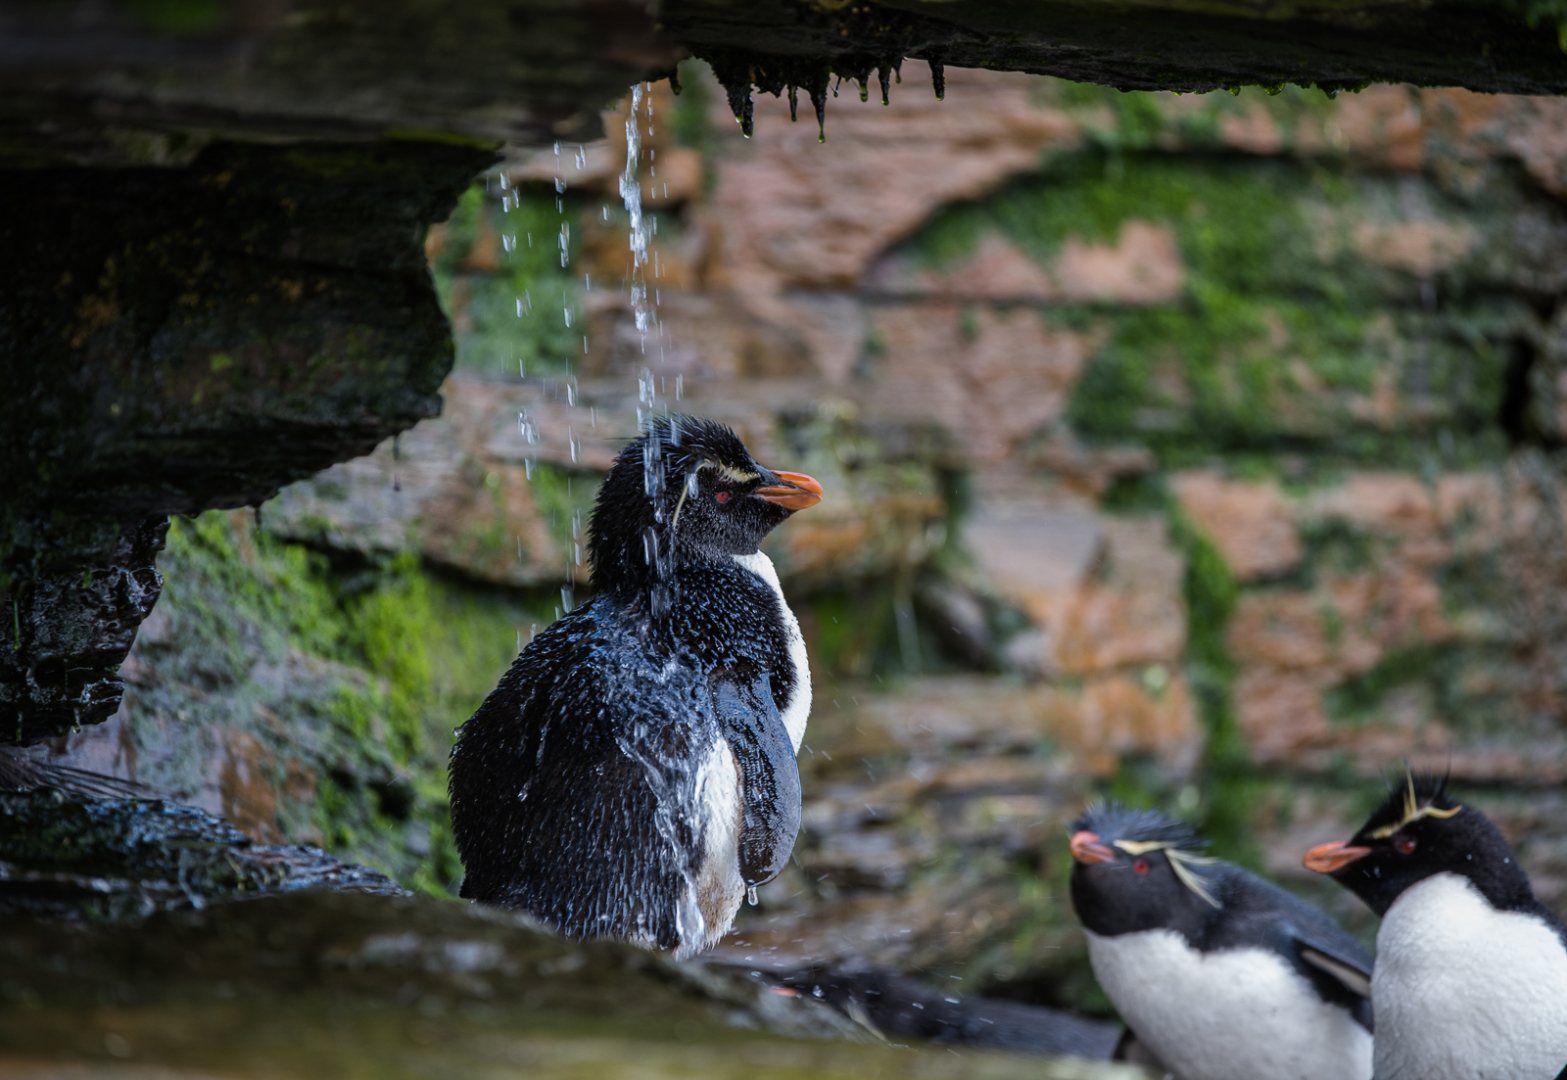 Rockhopper Shower, Saunders Island, Falkland Islands